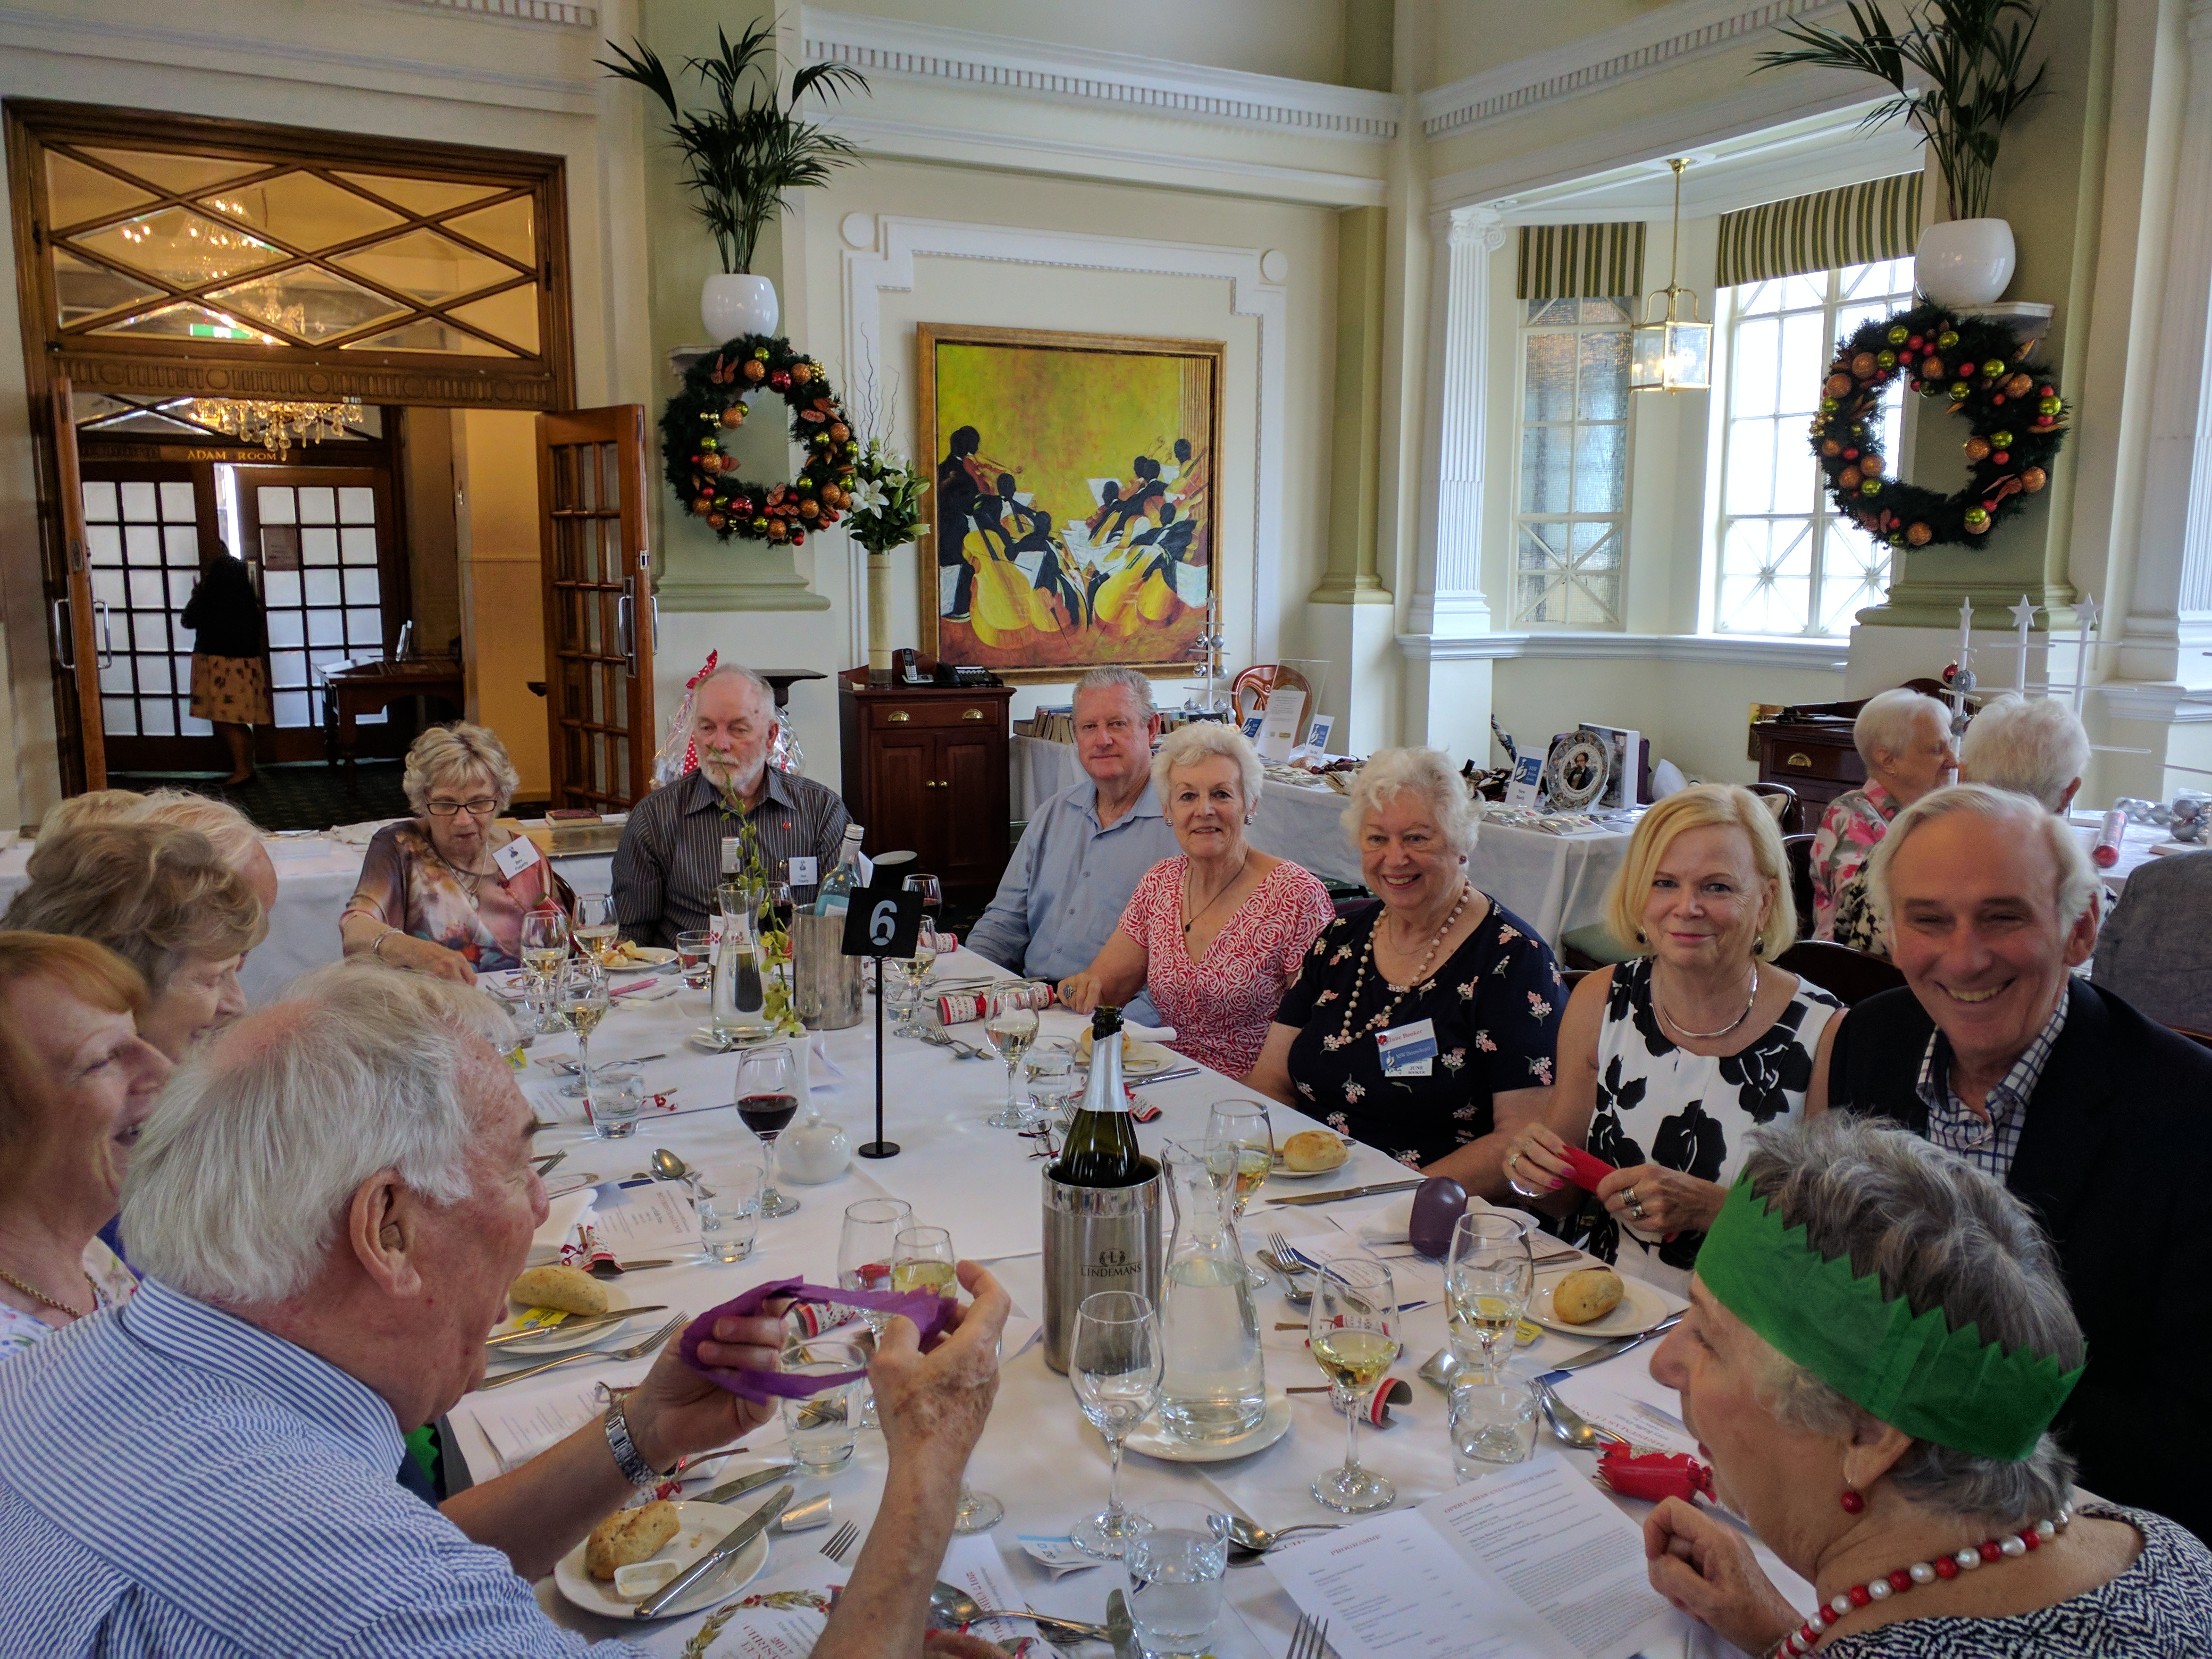 Reading Of Christmas Lunch In A Hotel Dining Room